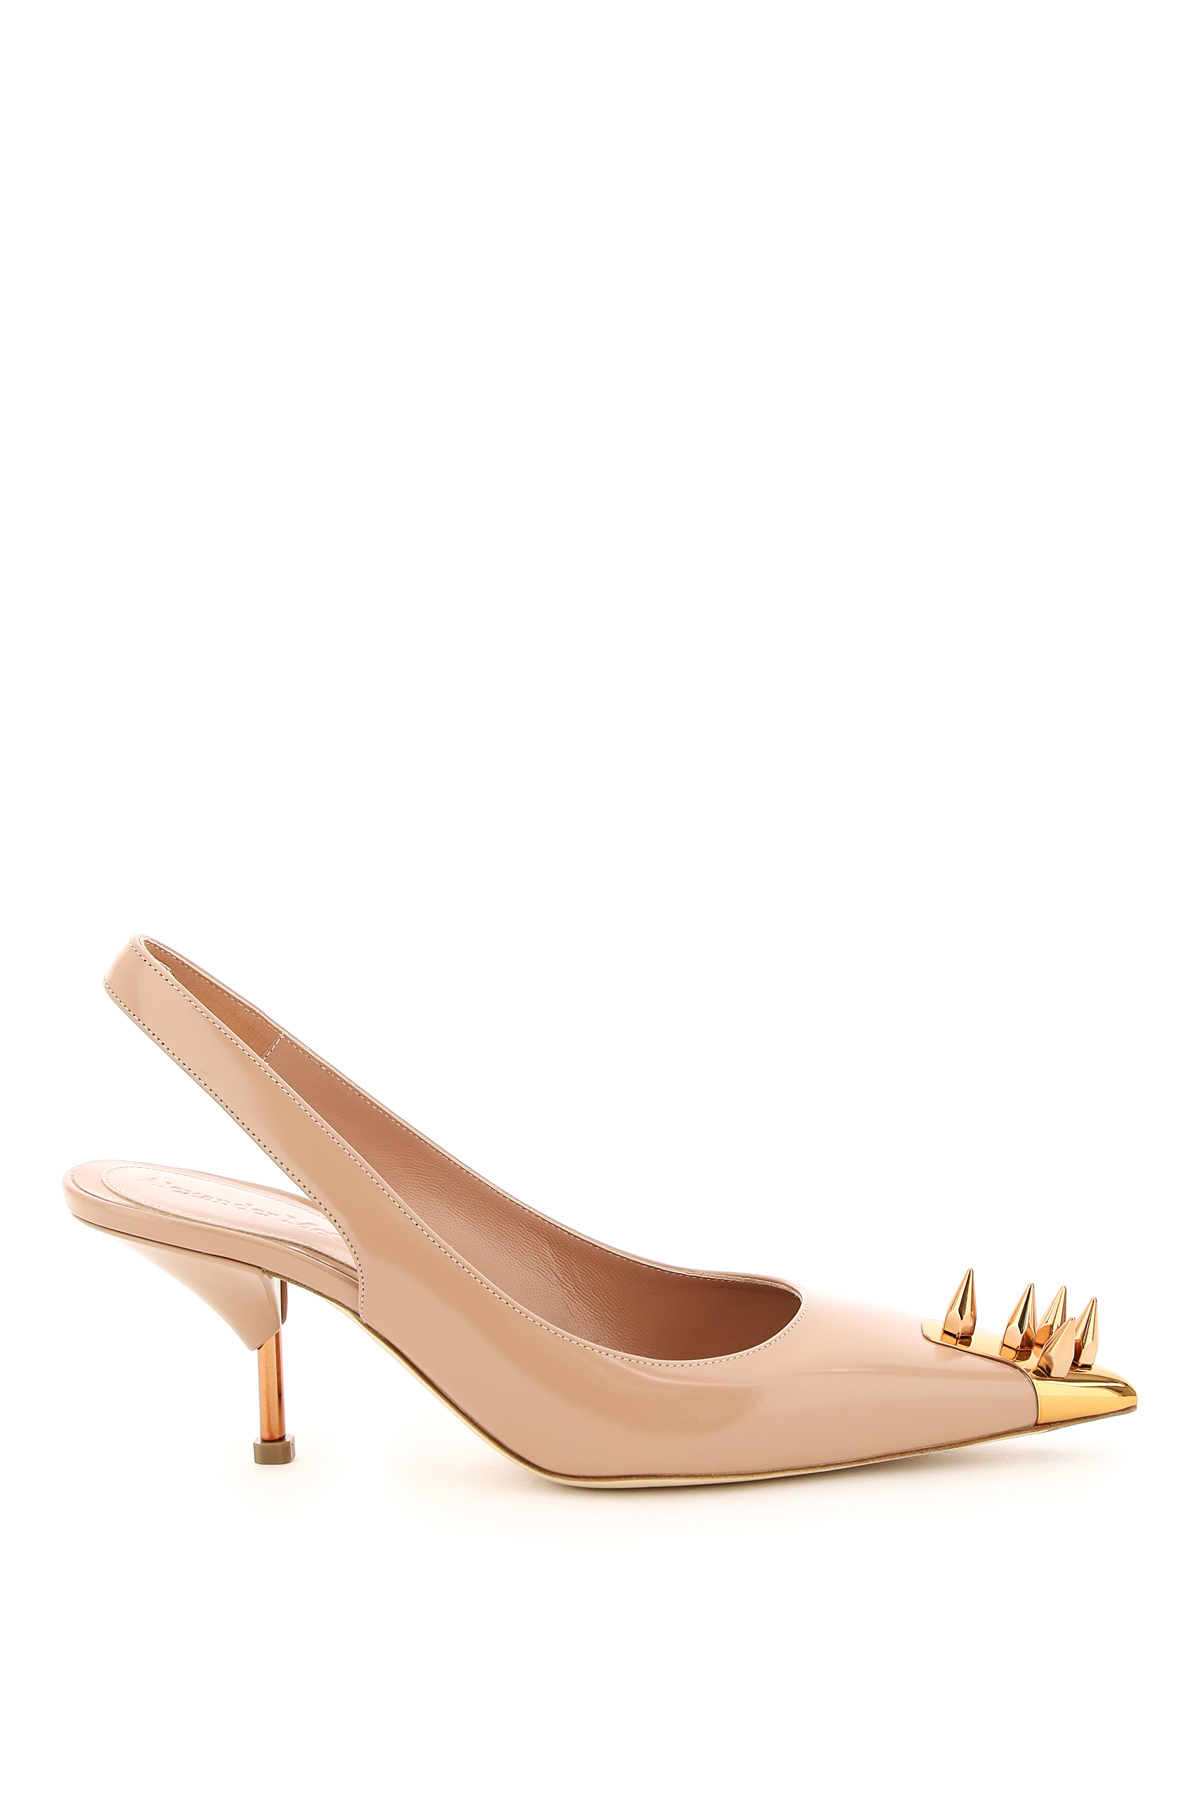 Alexander mcqueen leather slingback with studs